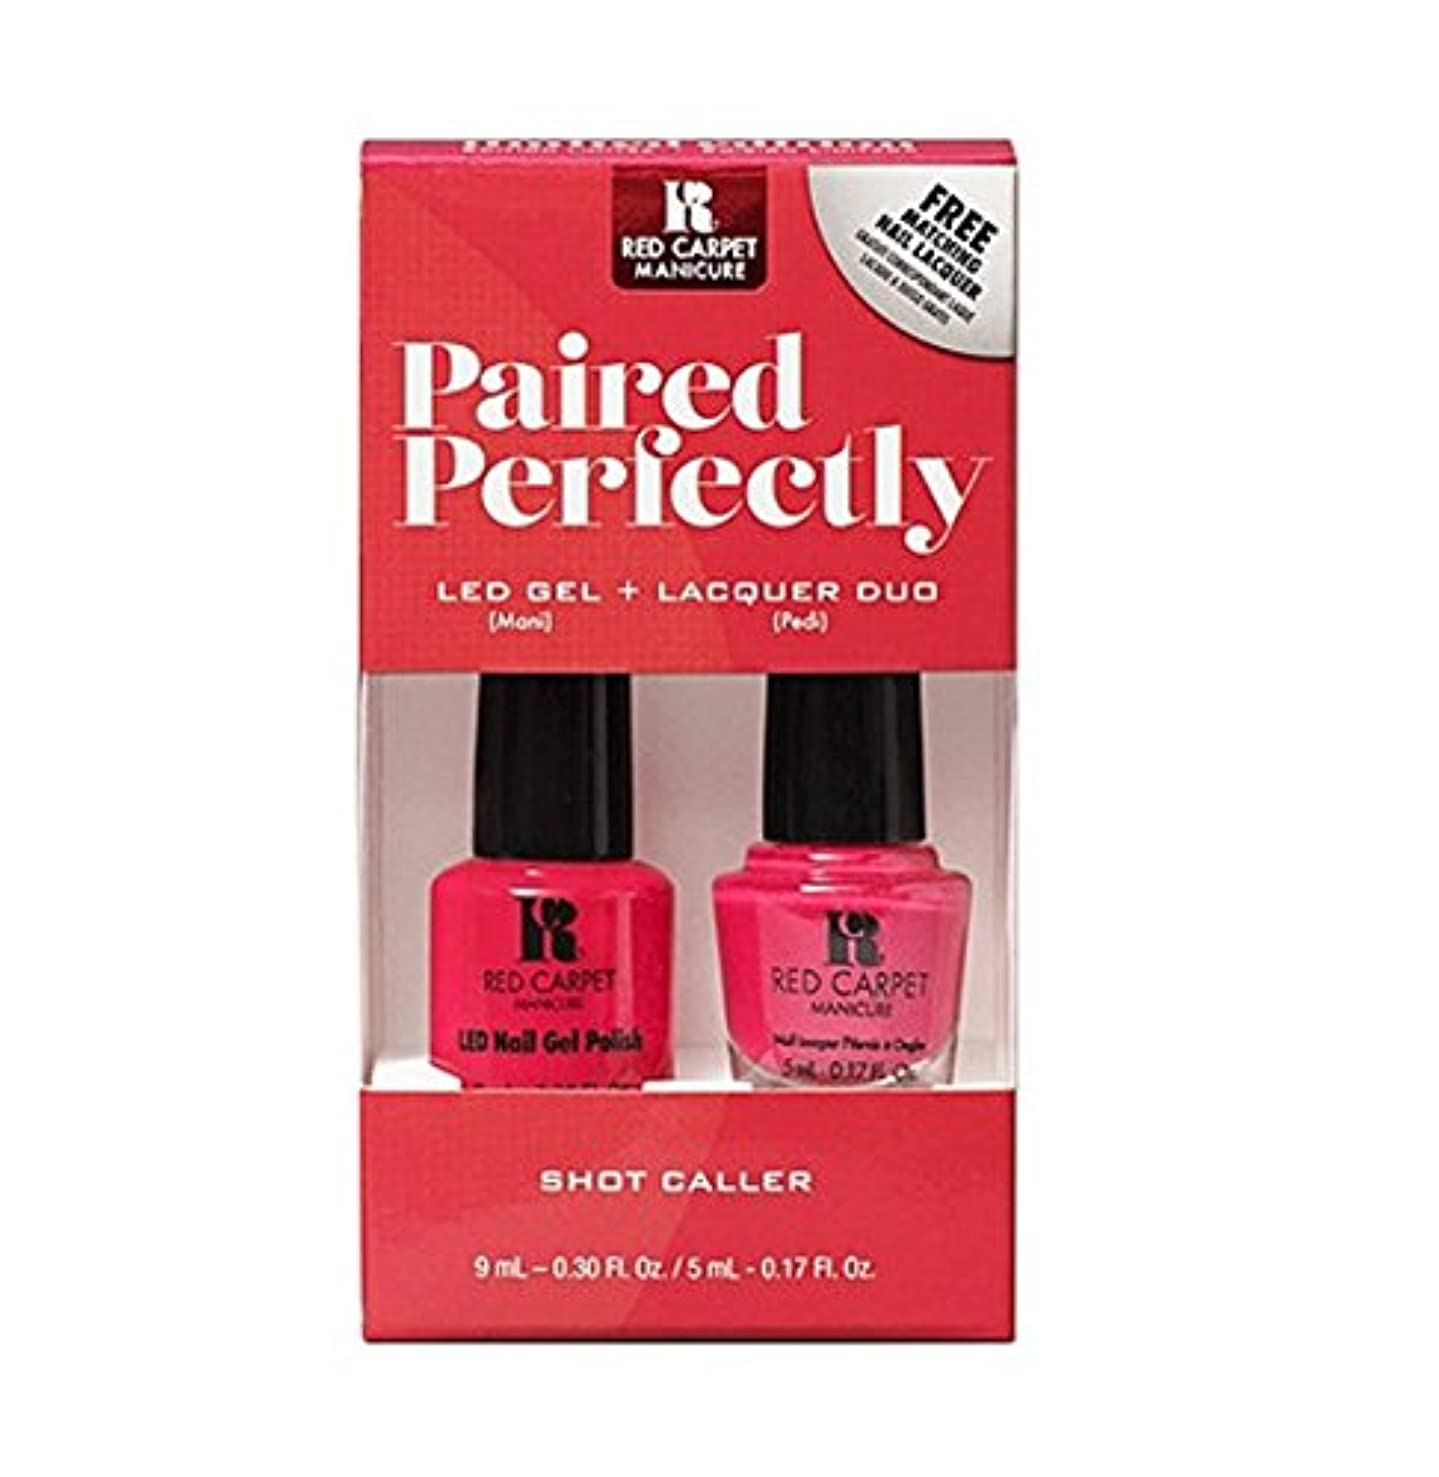 絵等々ワットRed Carpet Manicure - Paired Perfectly GEL & Lacquer DUO - Shot Caller